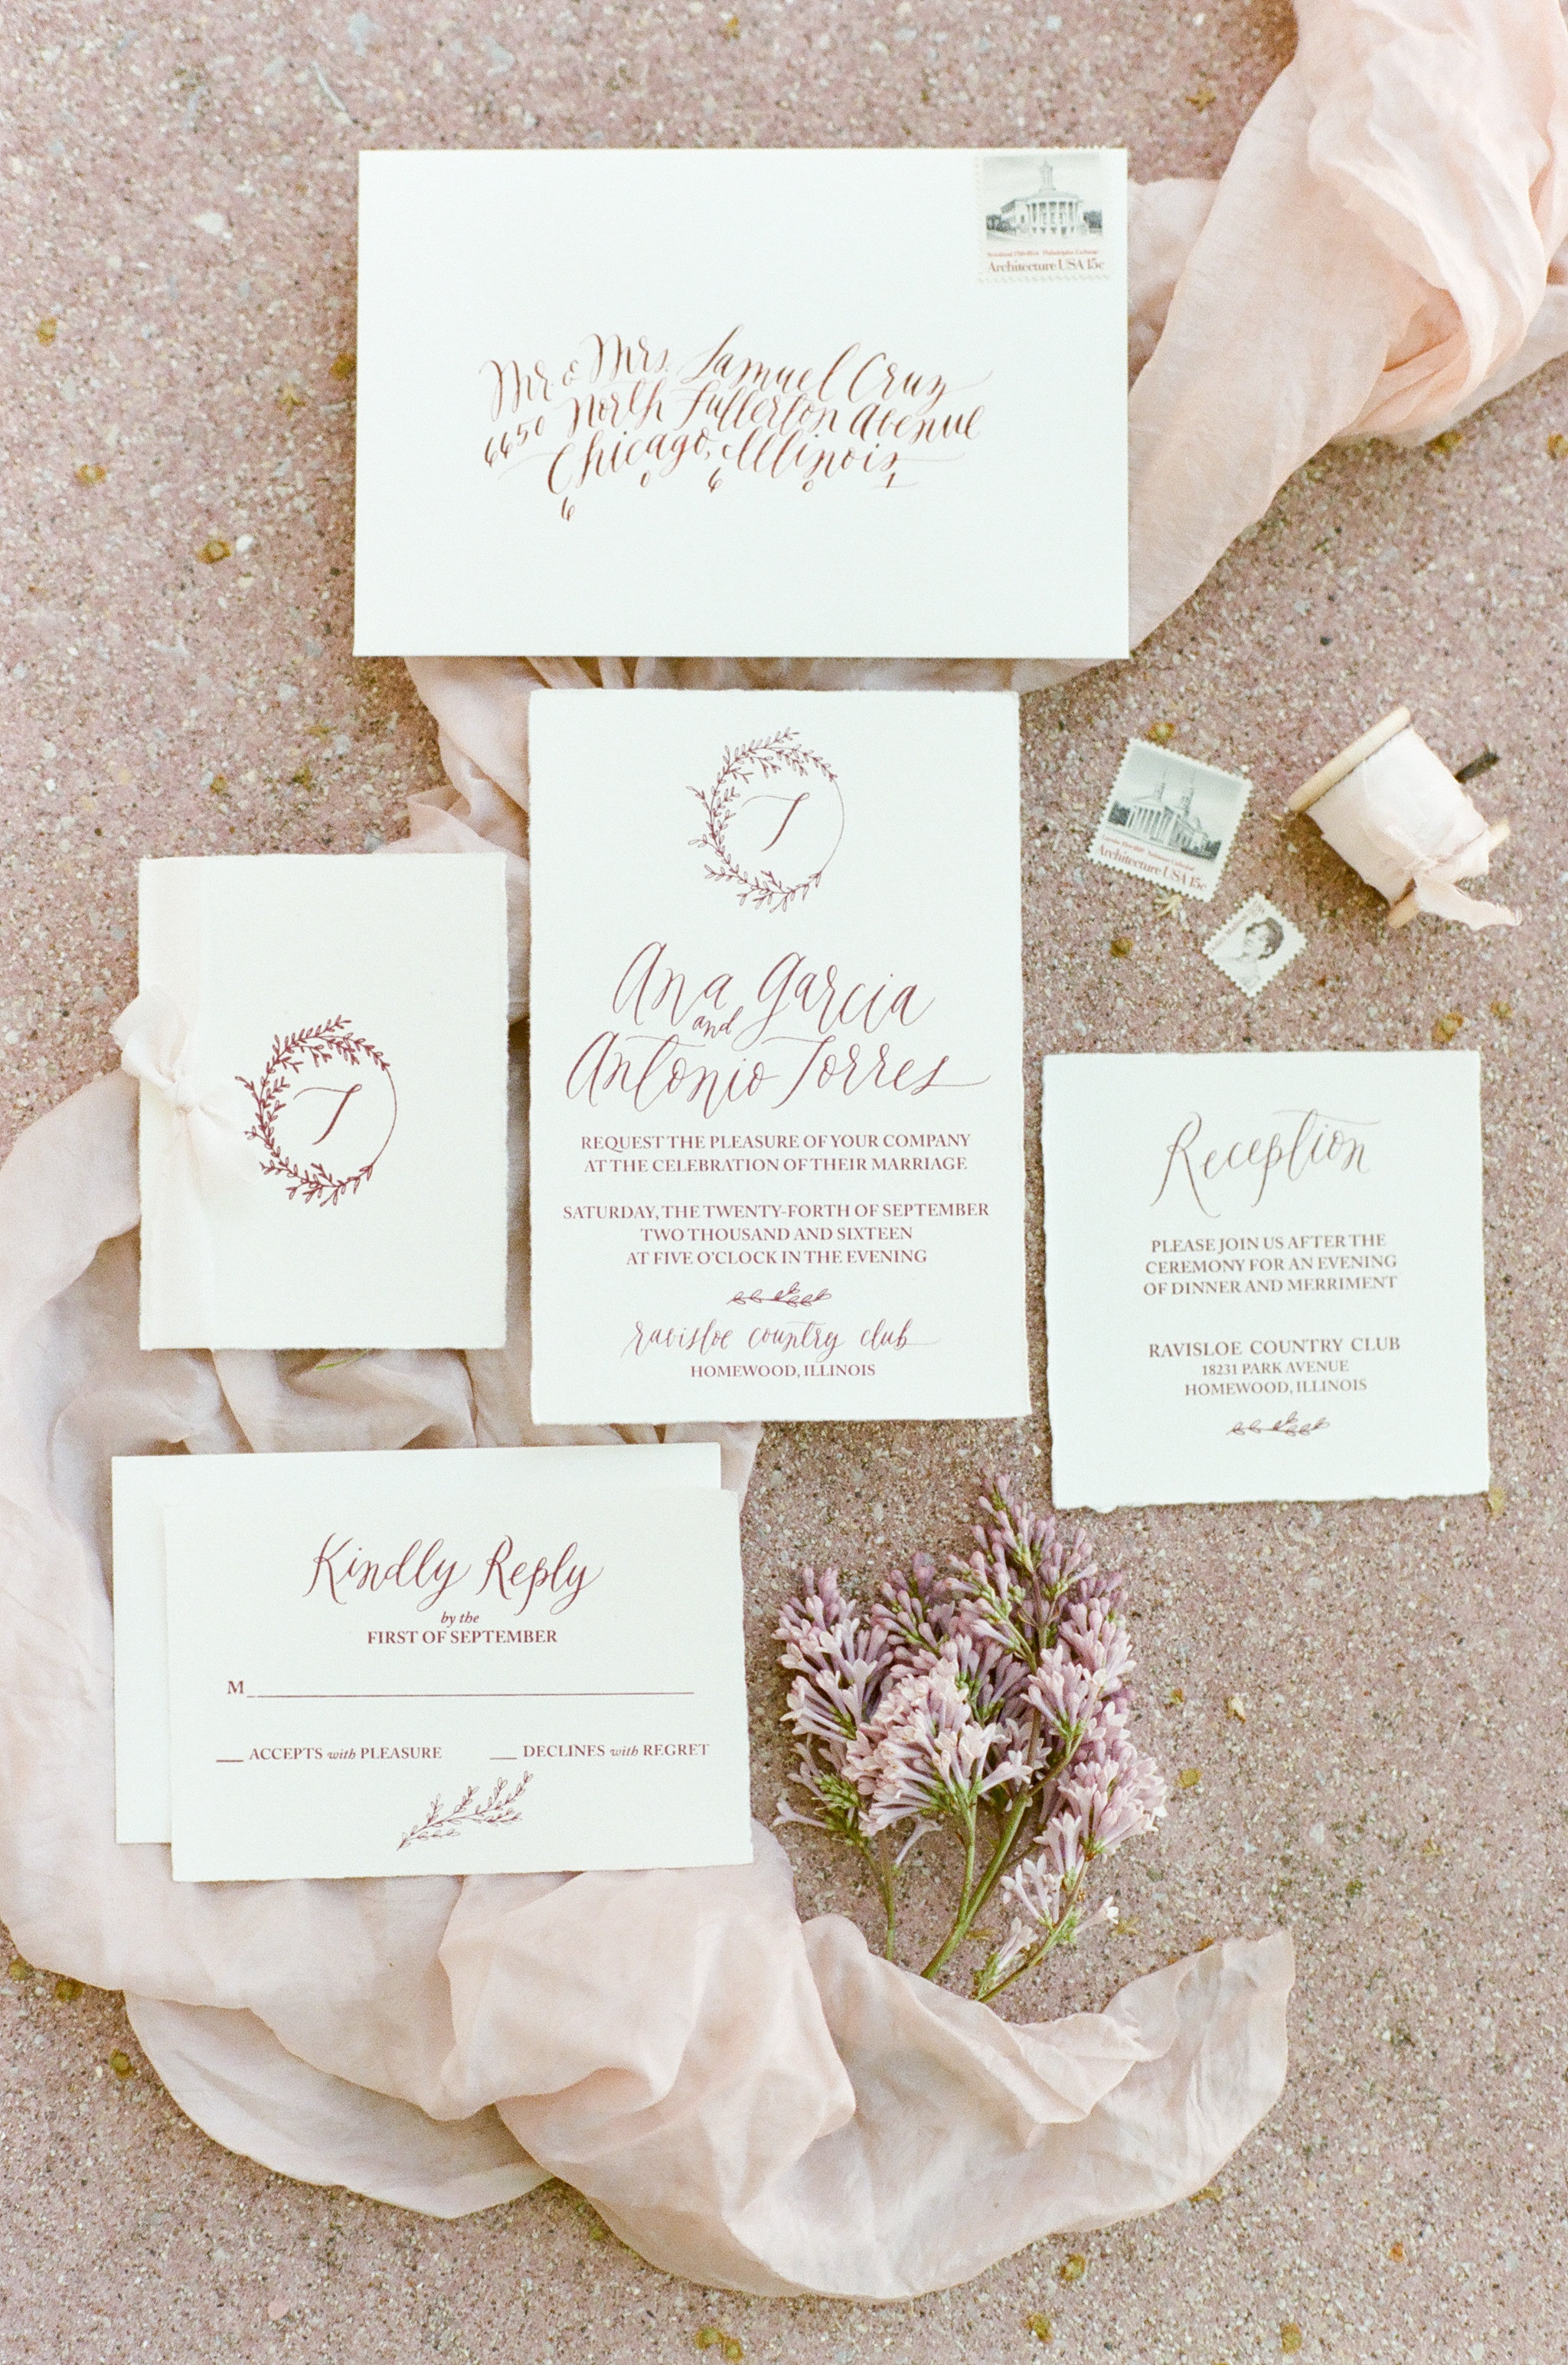 Calligraphed invitation suite.